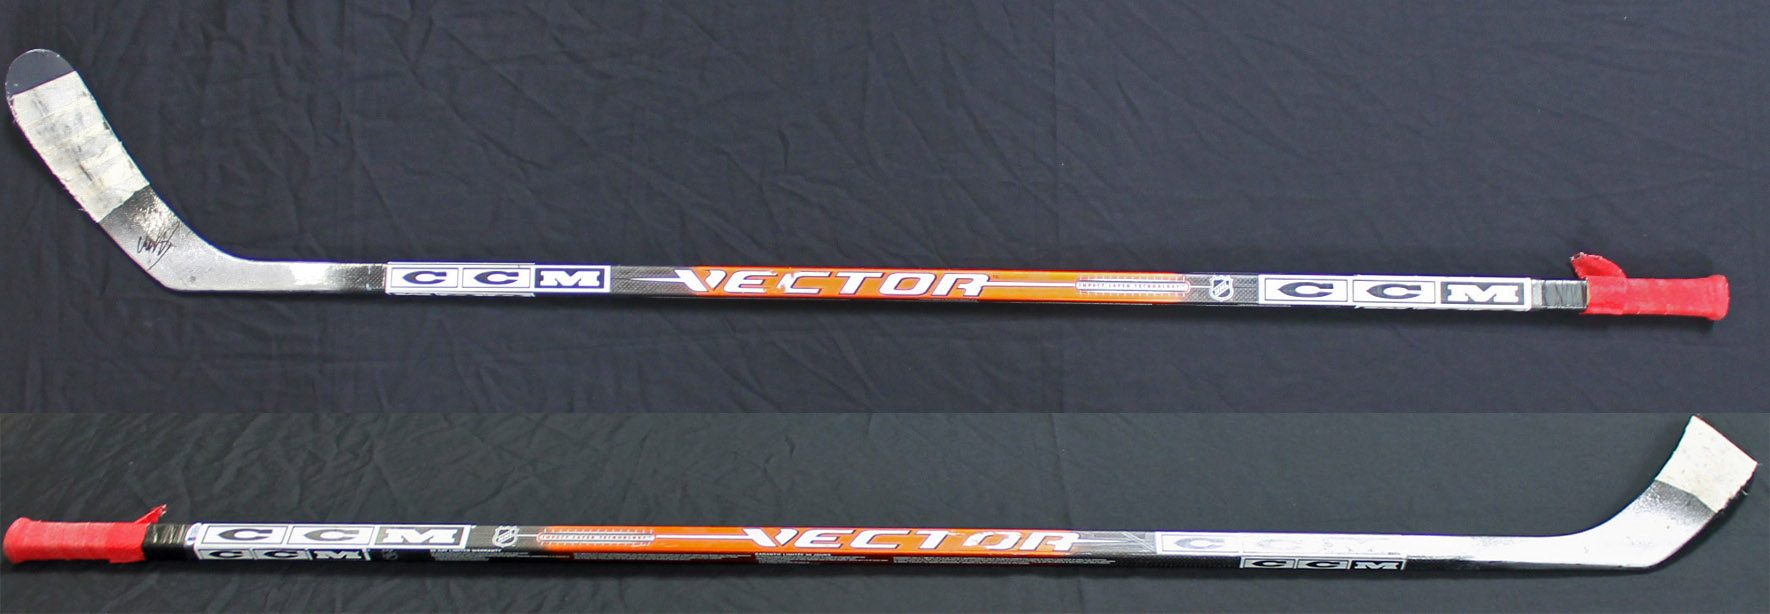 Details about Capitals Alexander Ovechkin Signed Game Used CCM Vector  Hockey Stick BAS  C20010 059908b66